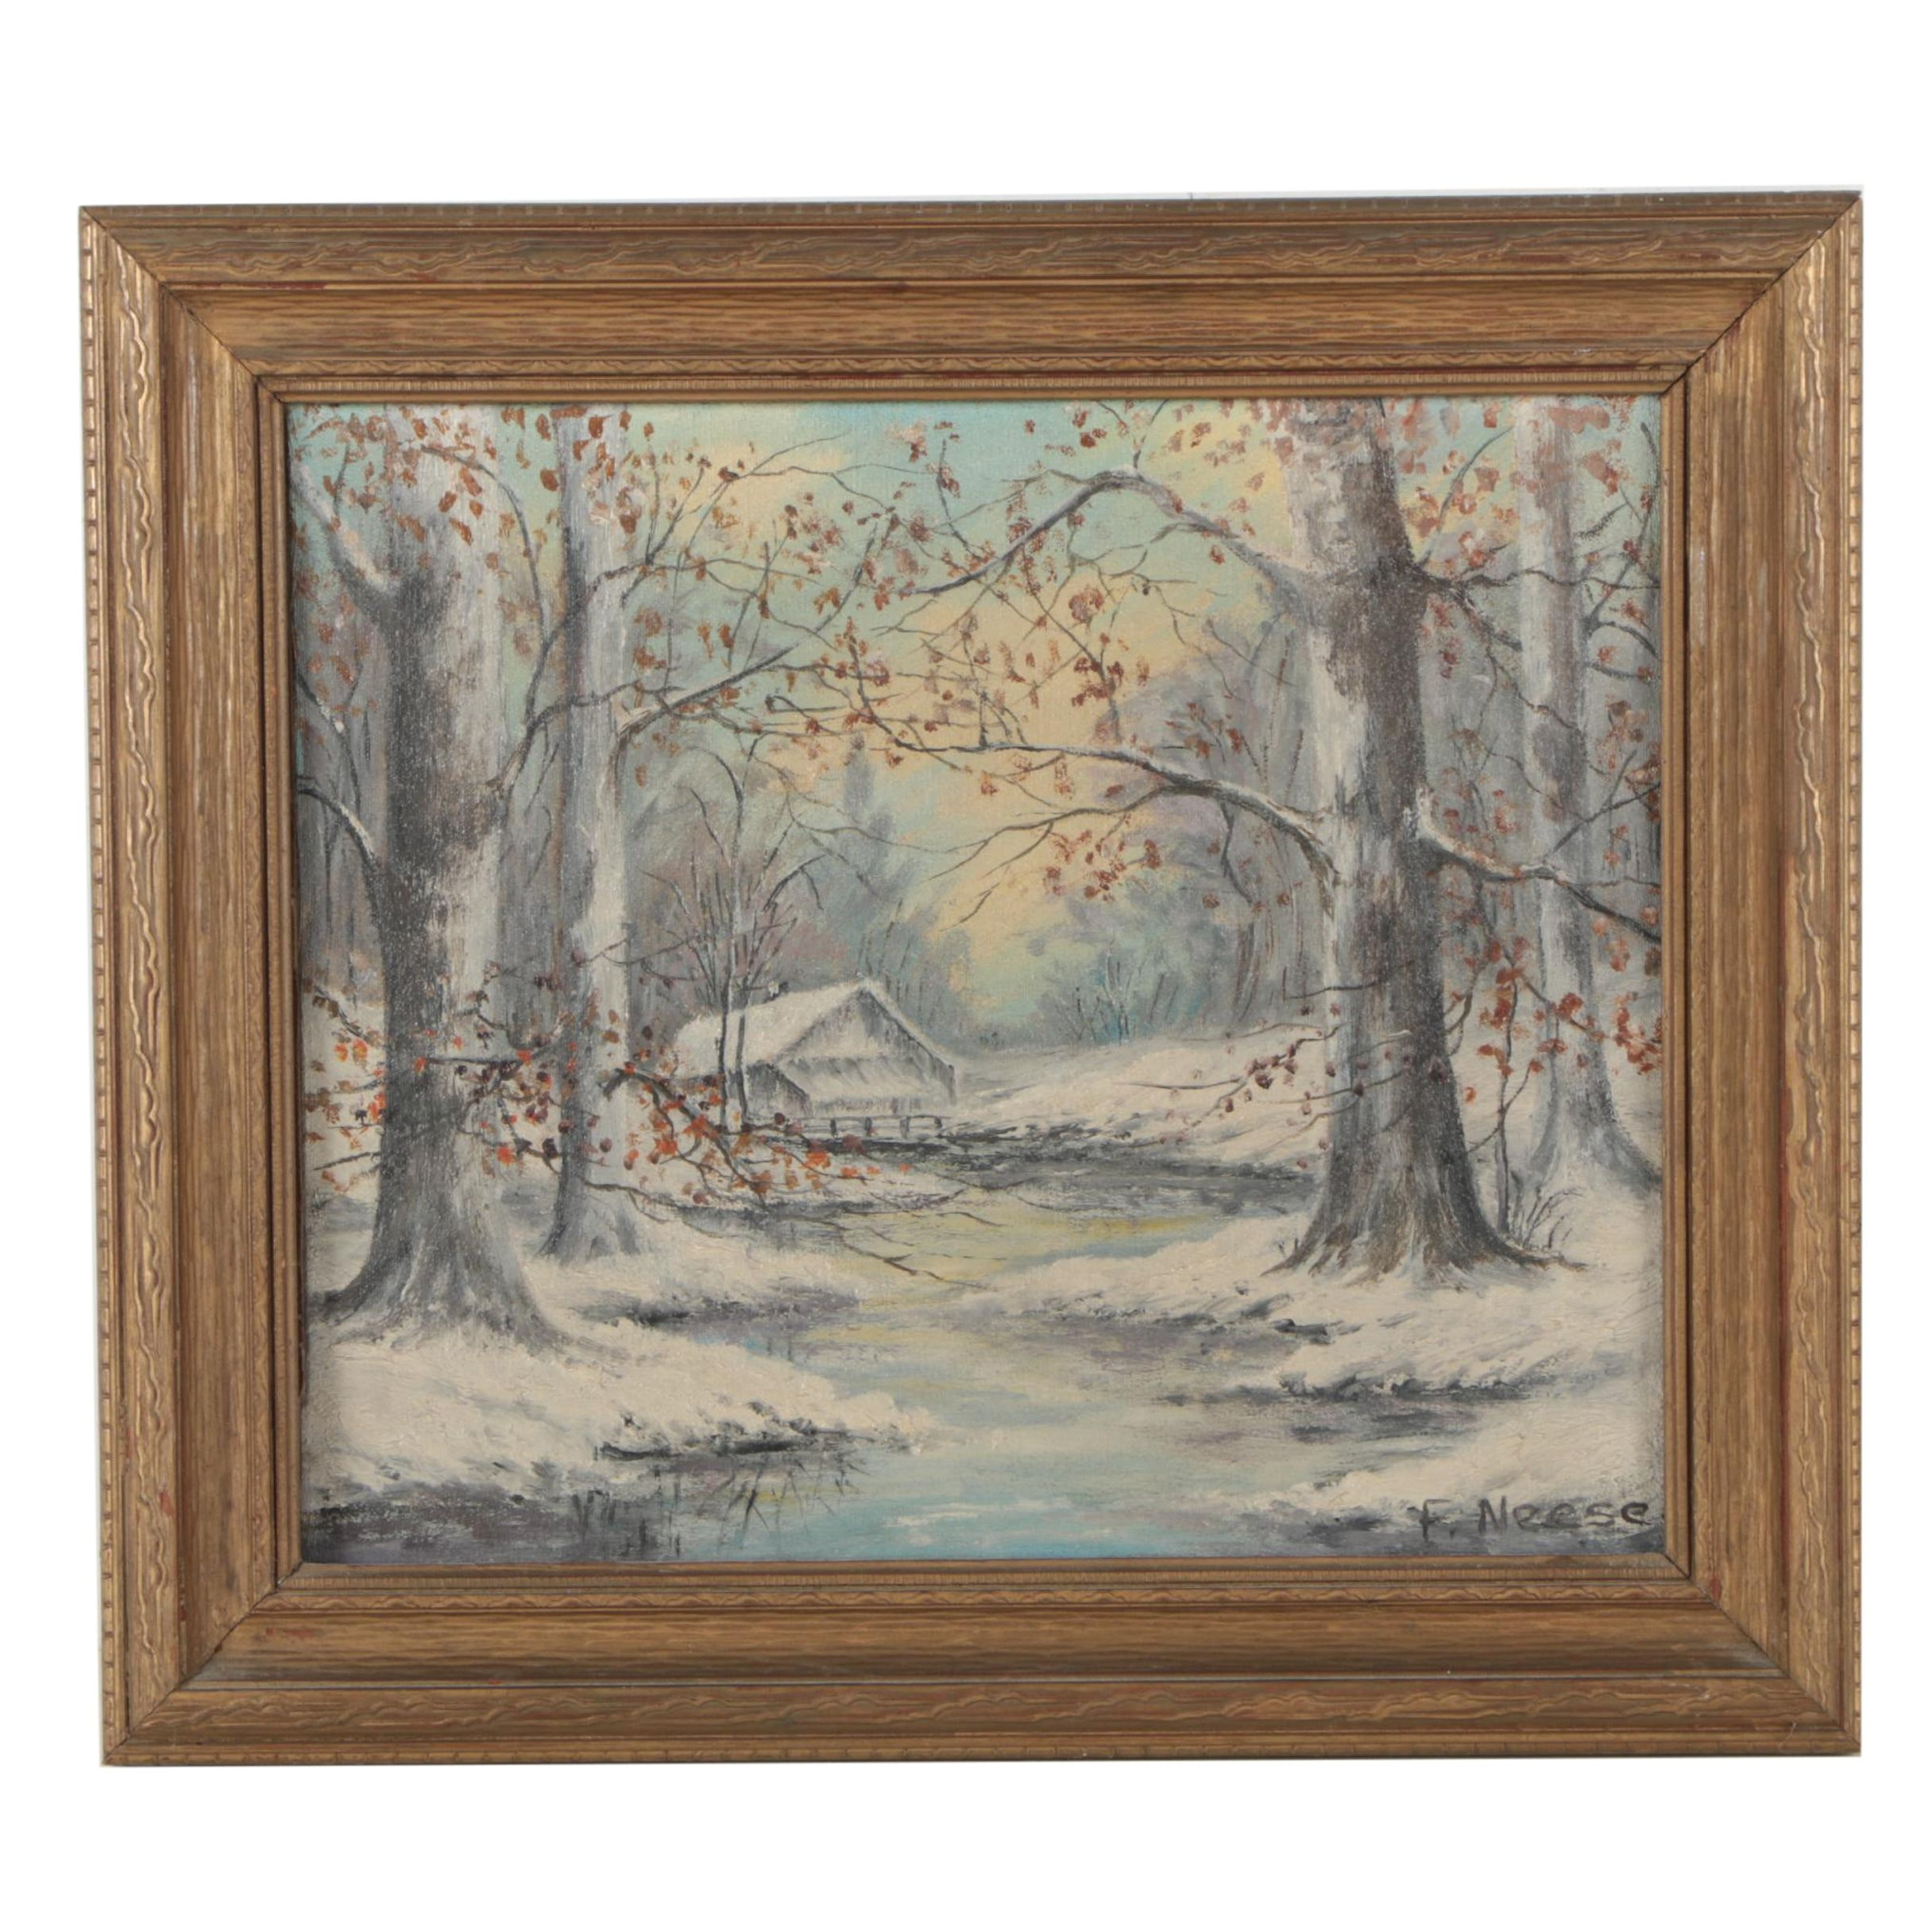 F. Neese Oil Painting of a Winter Forest Scene